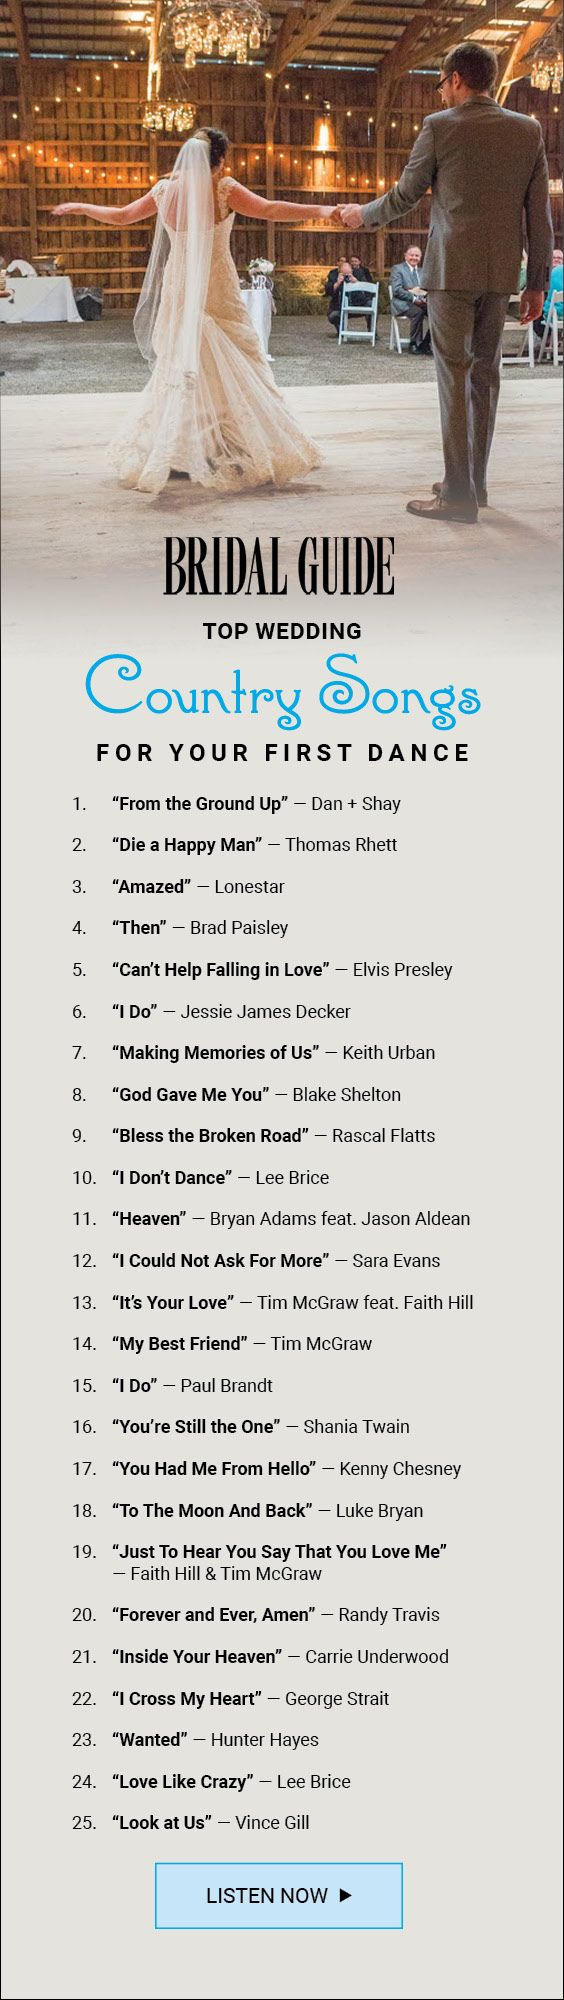 Here Are The Top Country Songs For Your First Dance As A Married